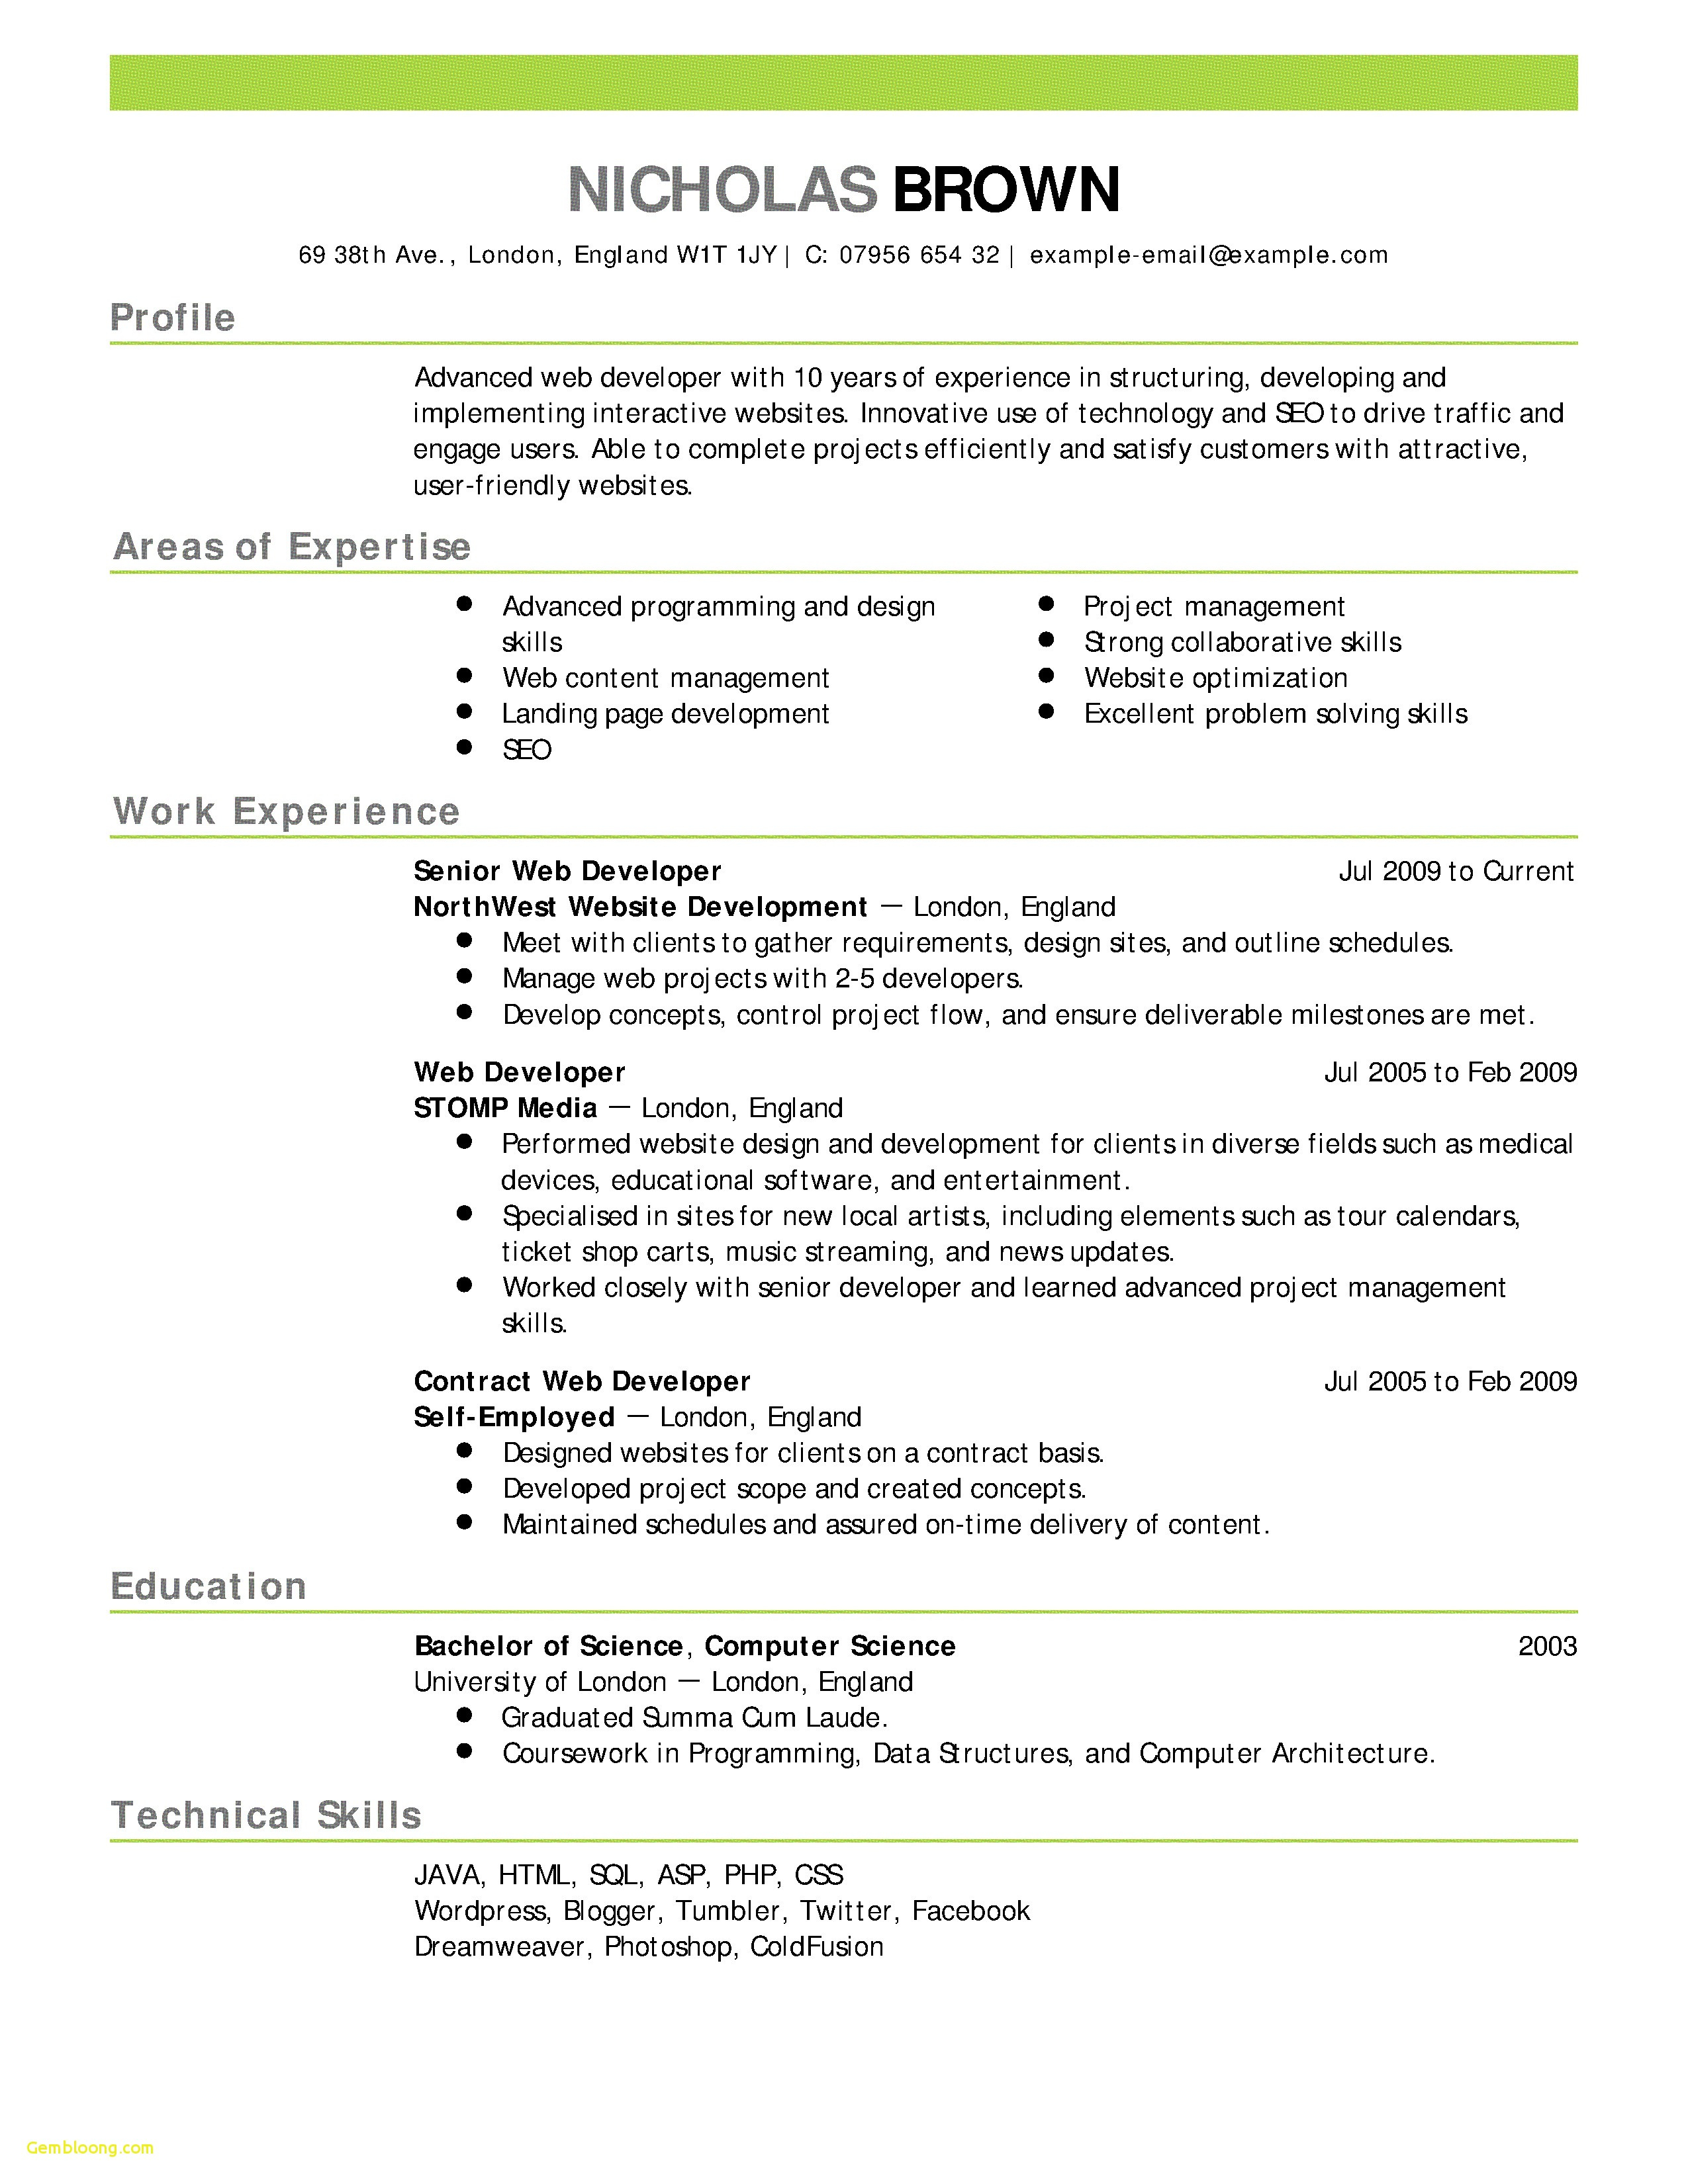 Resume Cover Letter Template Download - Resume Cover Letter Template Free Download Myacereporter